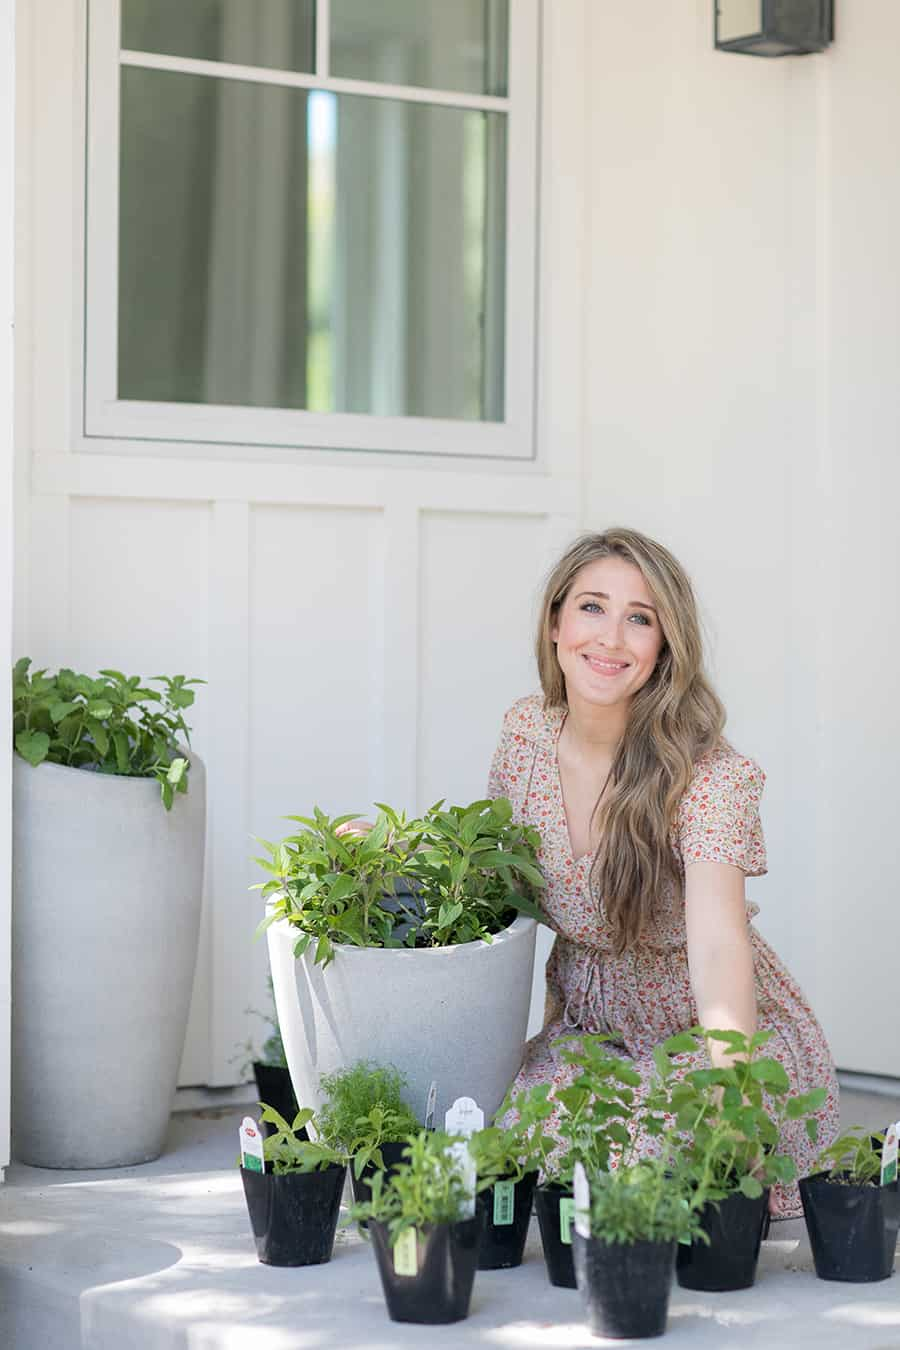 Eden Passante planting herbs on her side porch.